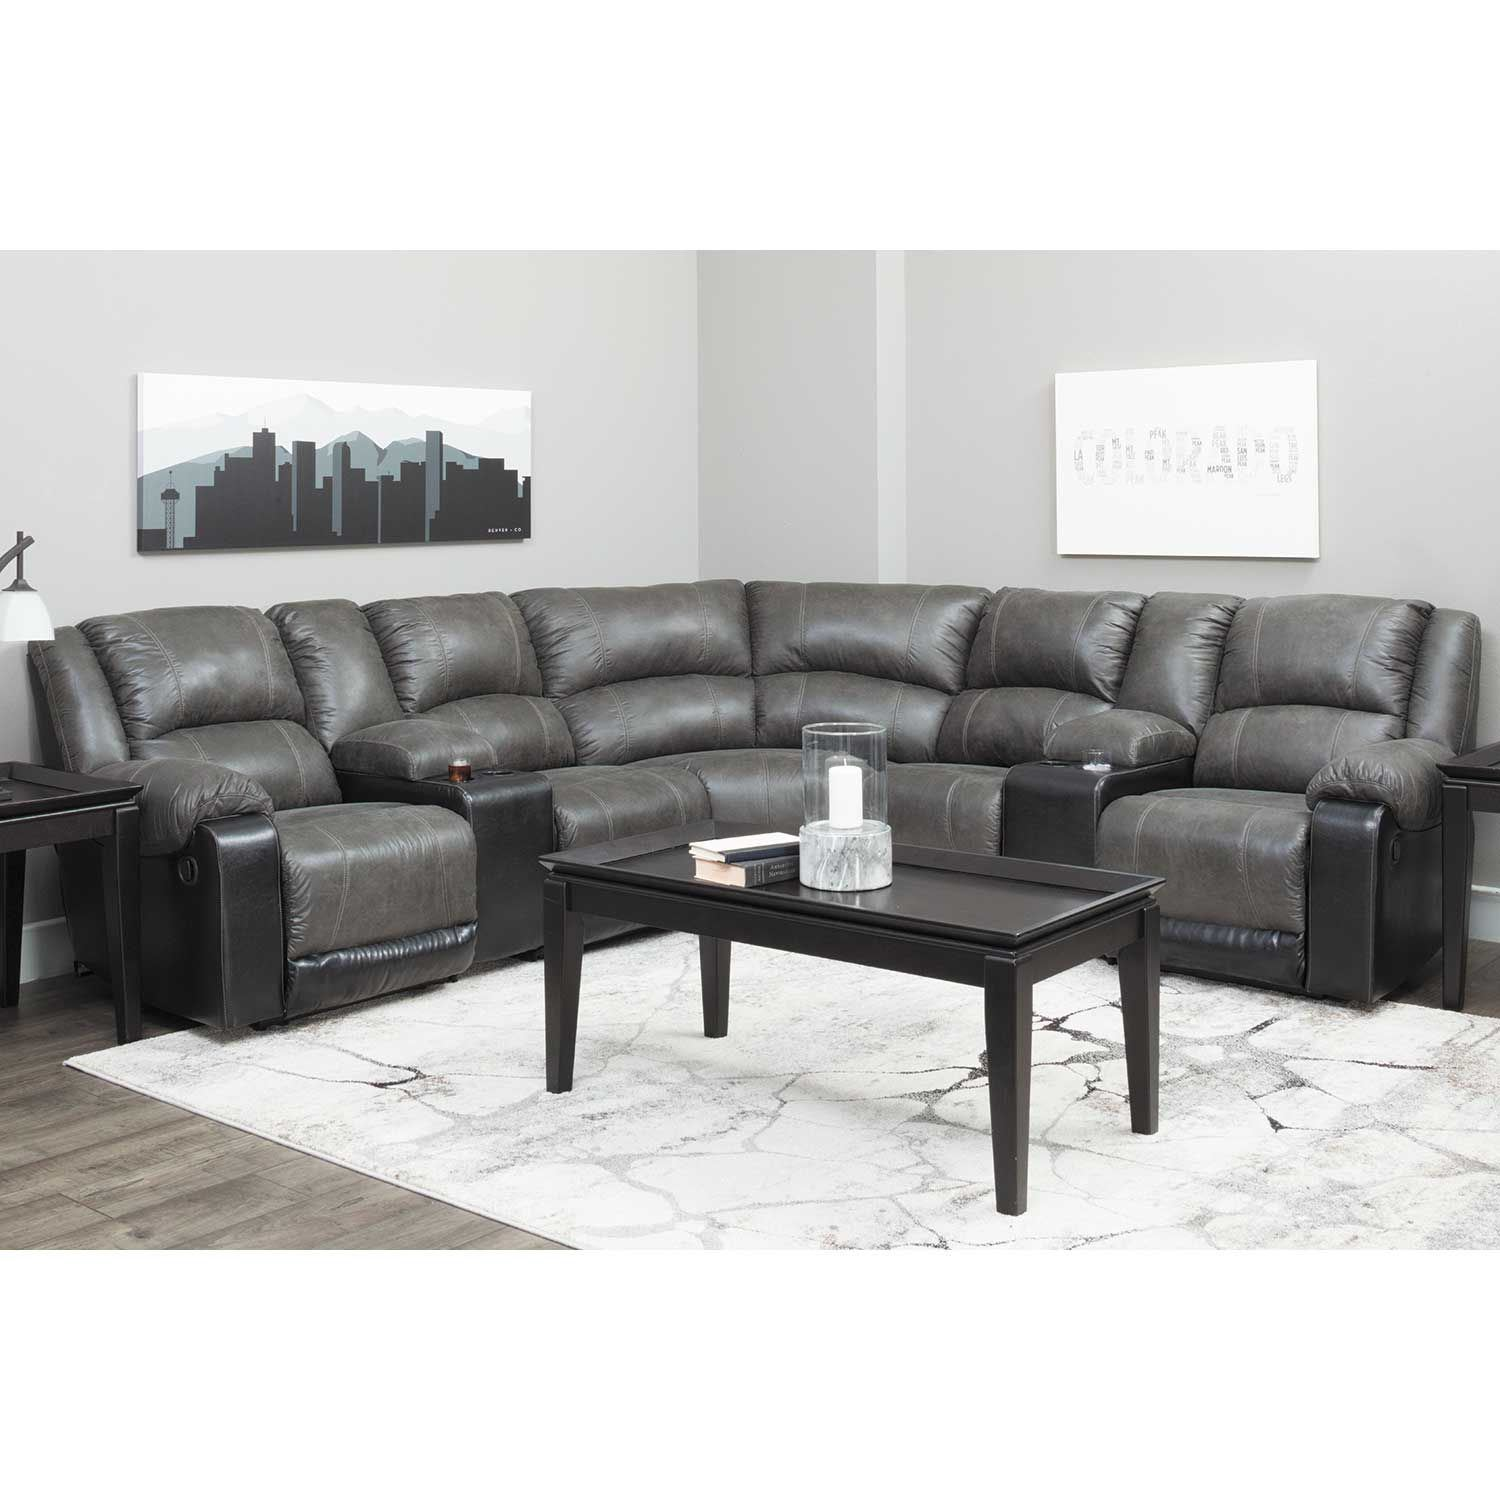 Picture of Nantahala Slate 7 Piece Reclining Sectional with RAF Chaise